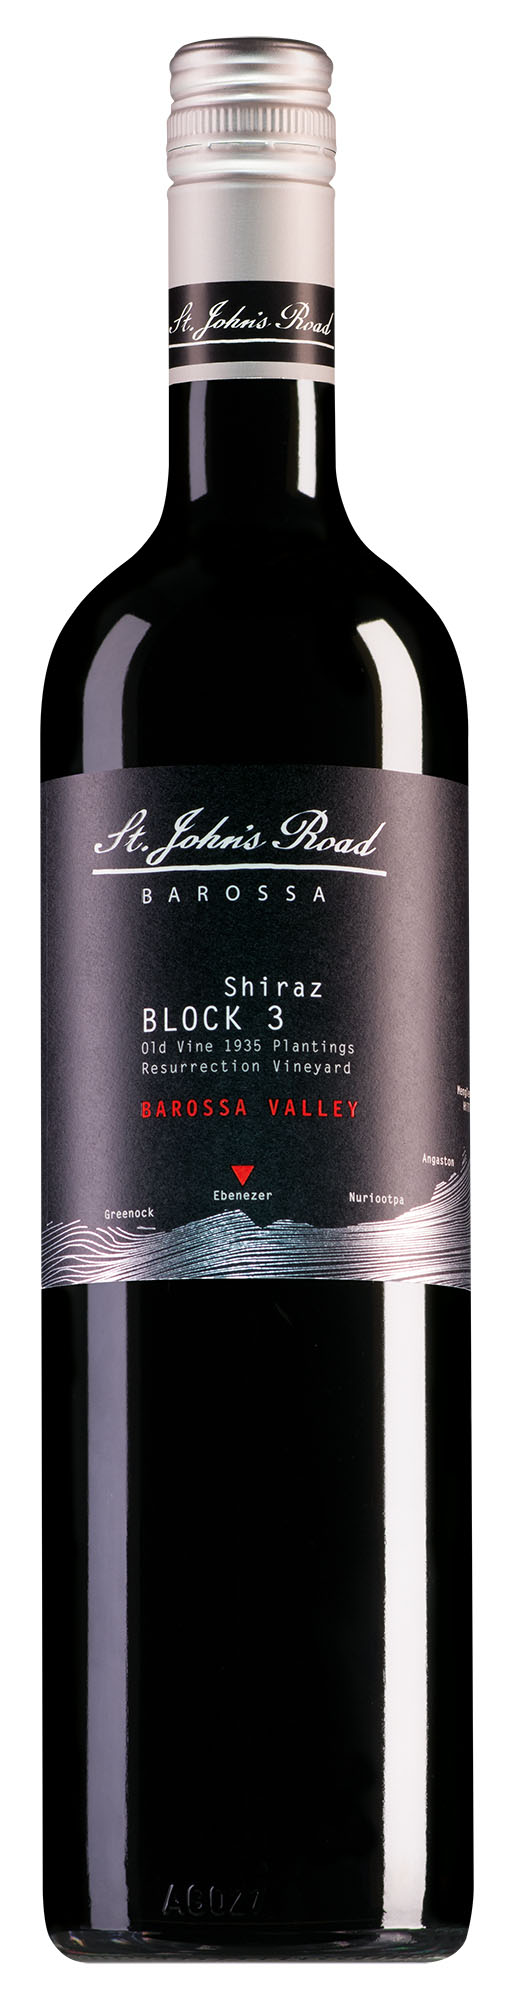 St. John's Road Barossa Valley Block 3 Shiraz